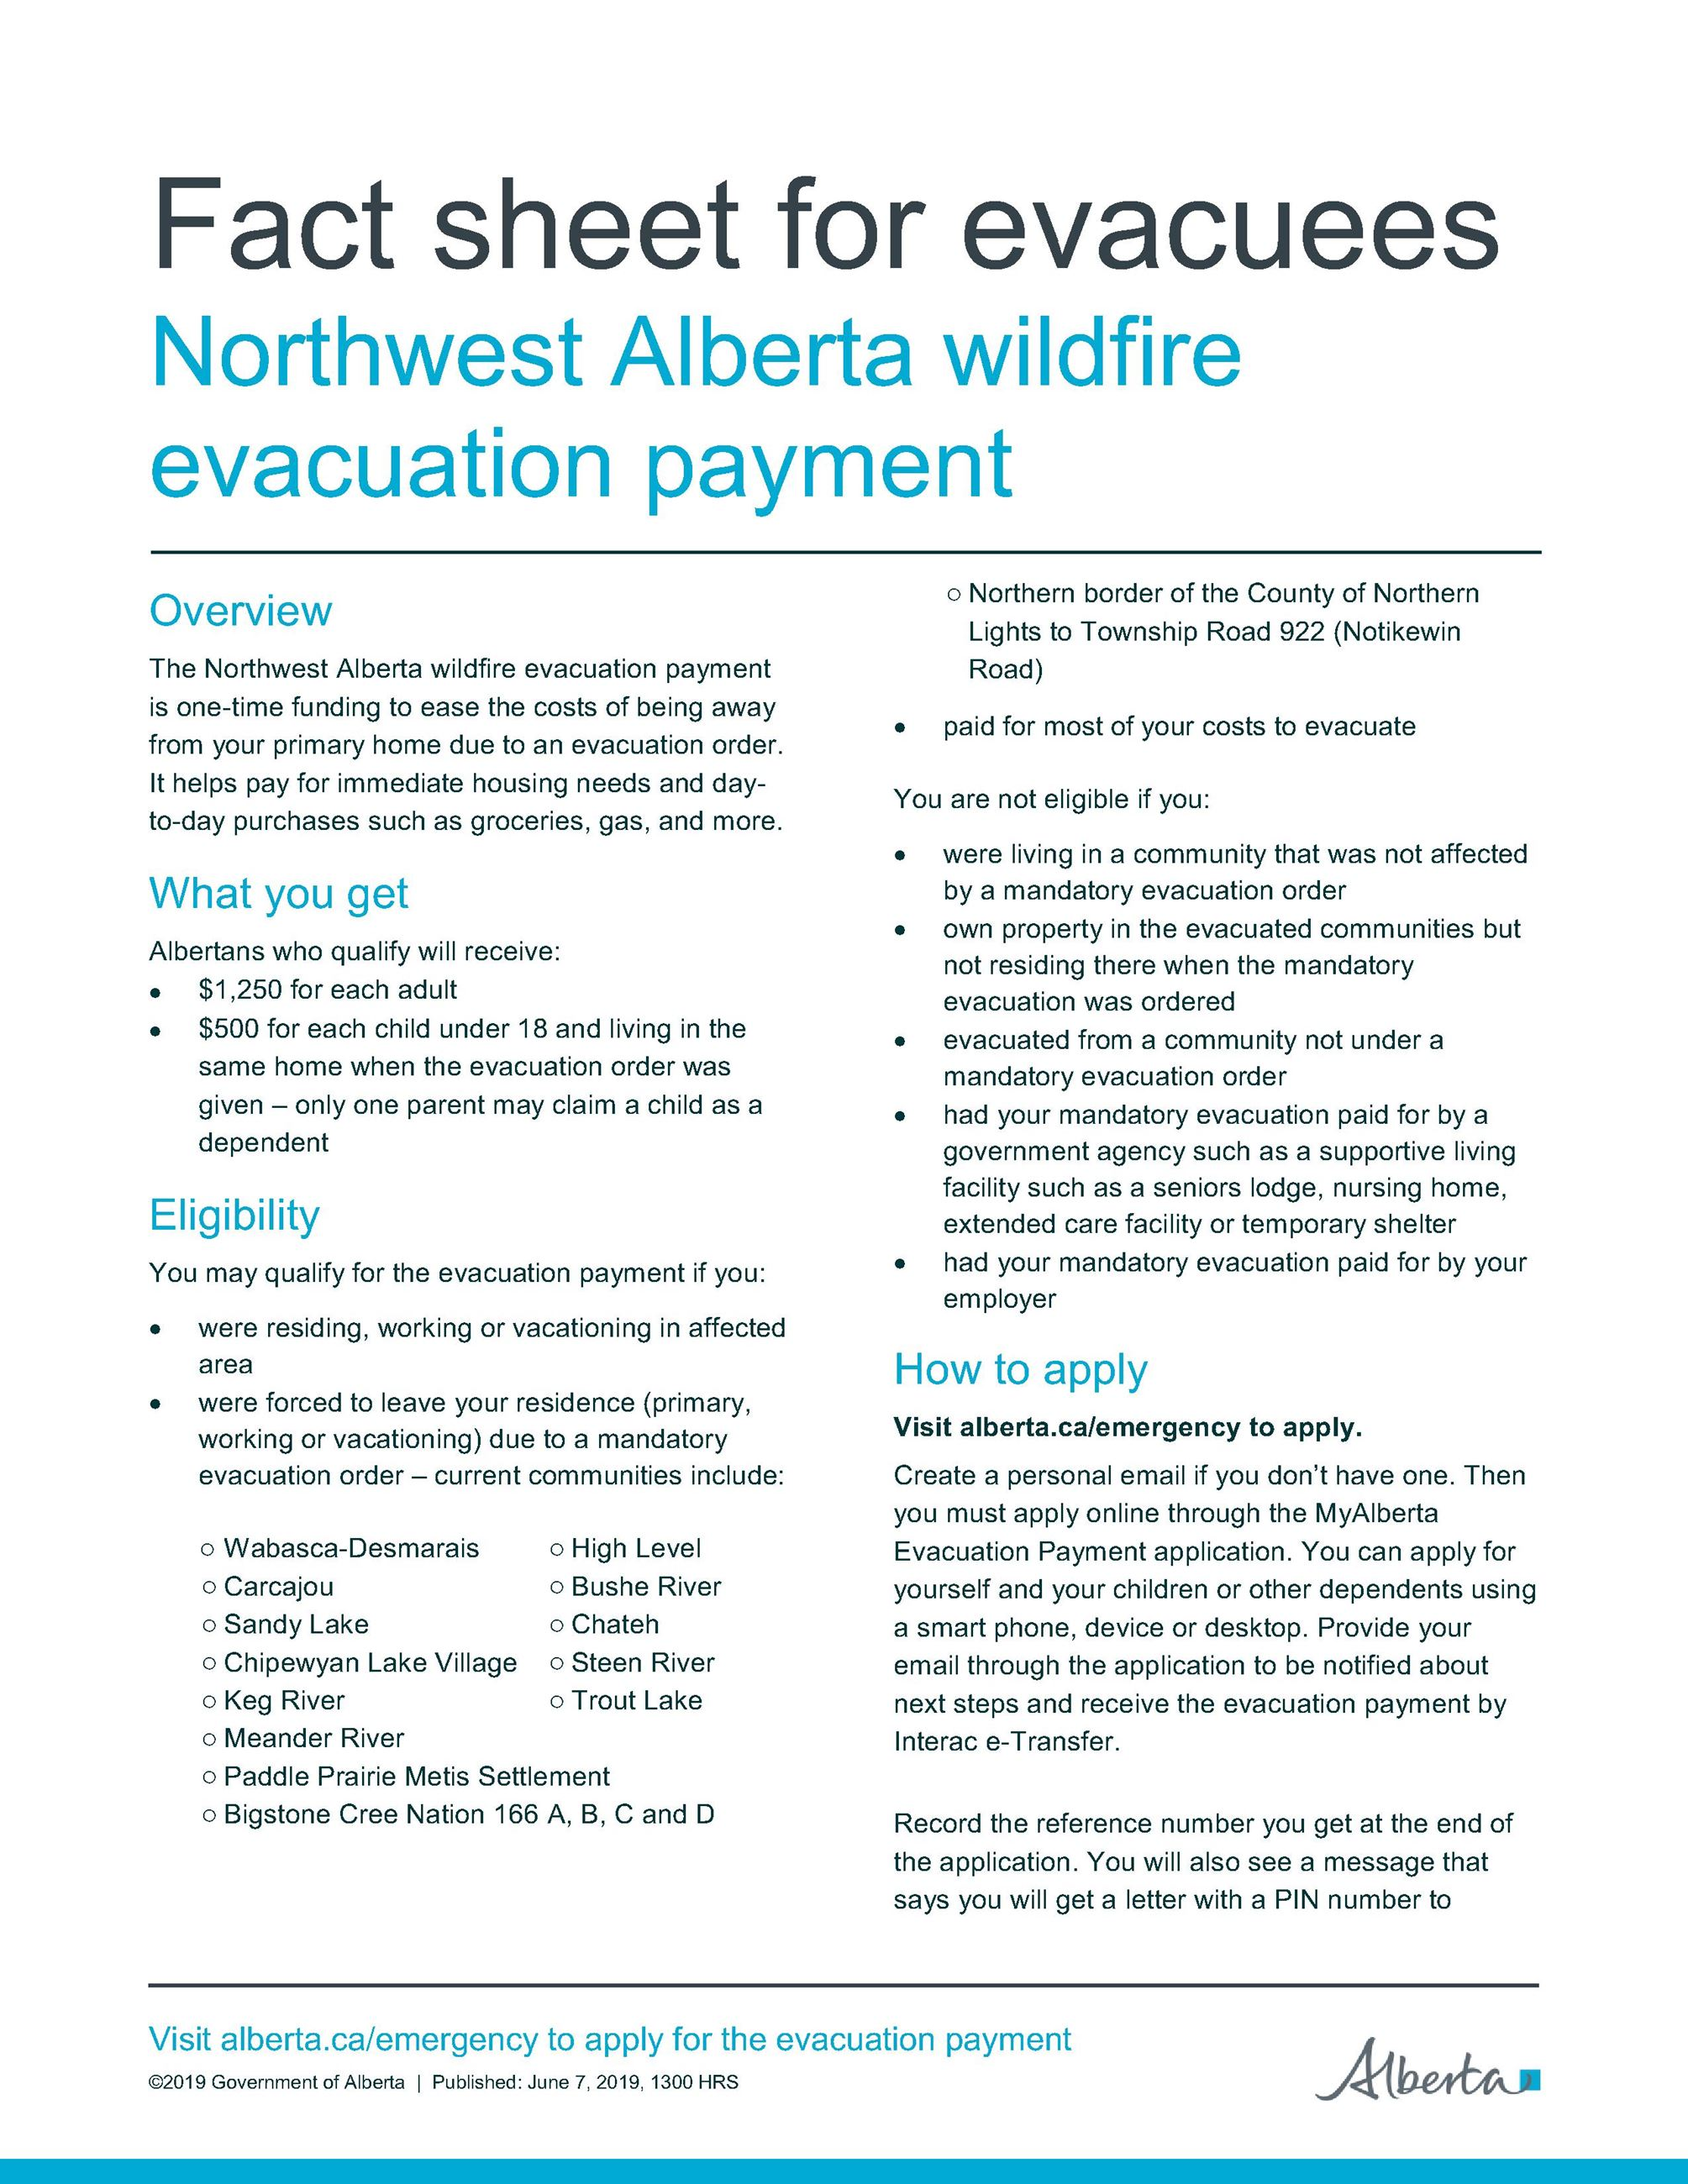 FACT SHEET - Evacuation Payment June 7 1300_1